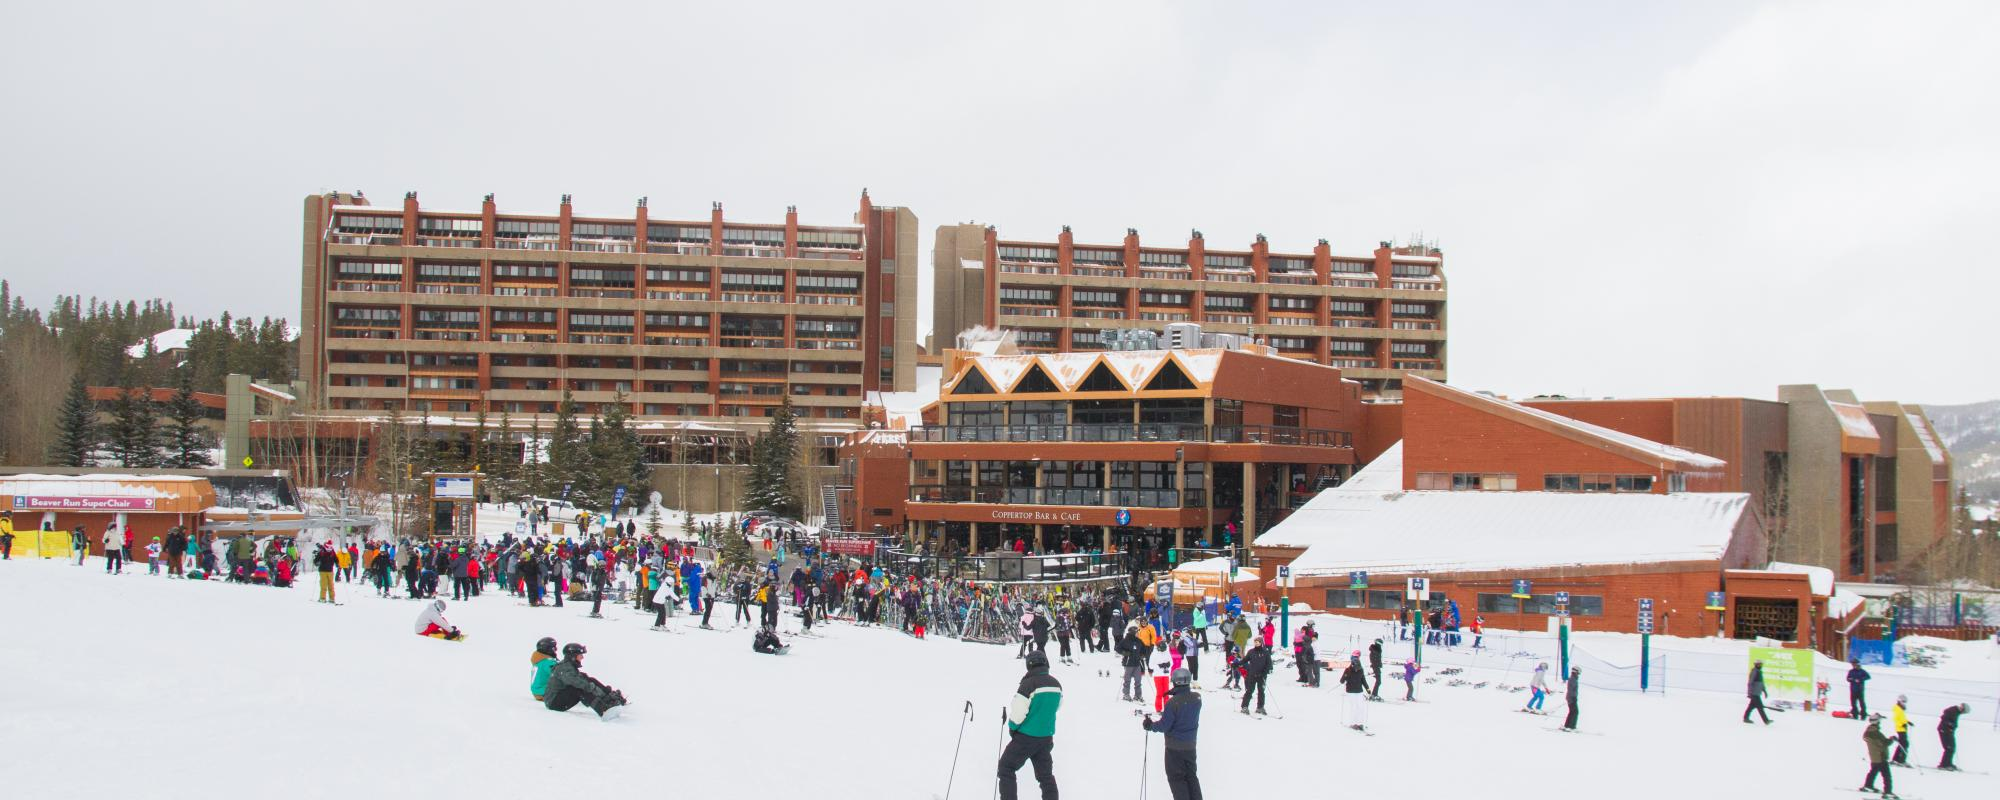 beaver run in the winter with people skiing